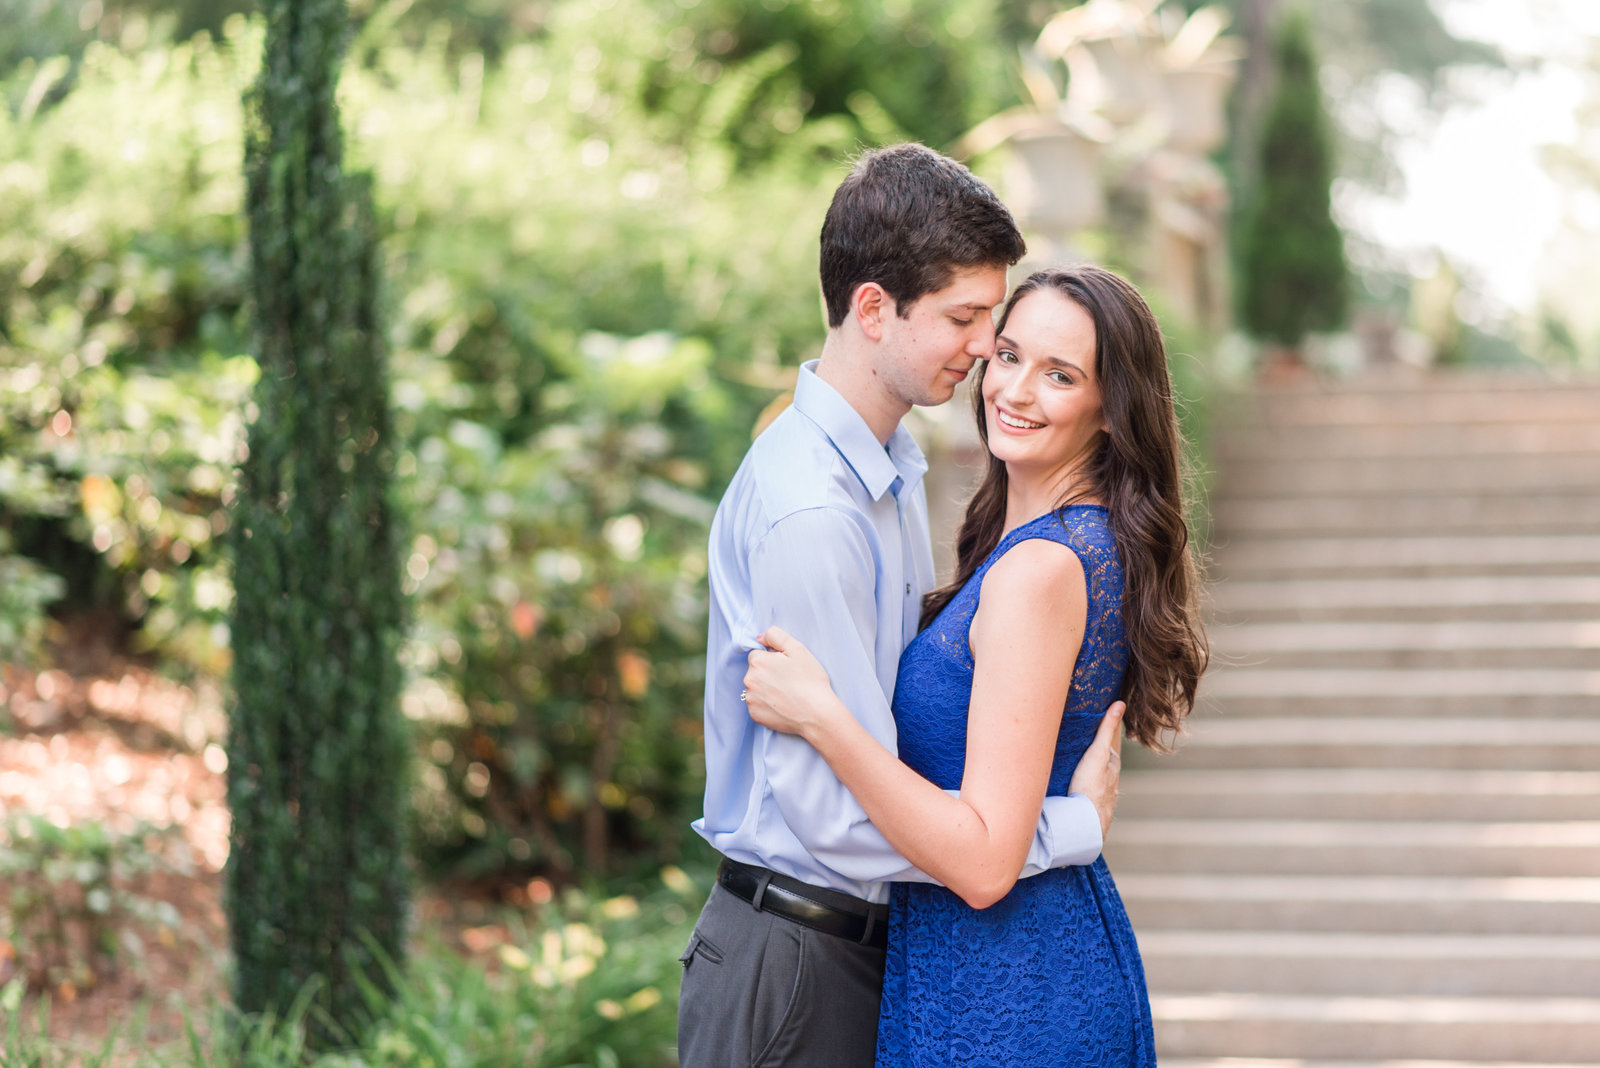 norfolk-botanical-gardens-engagement-session-by-virginia-wedding-photographer-photo77